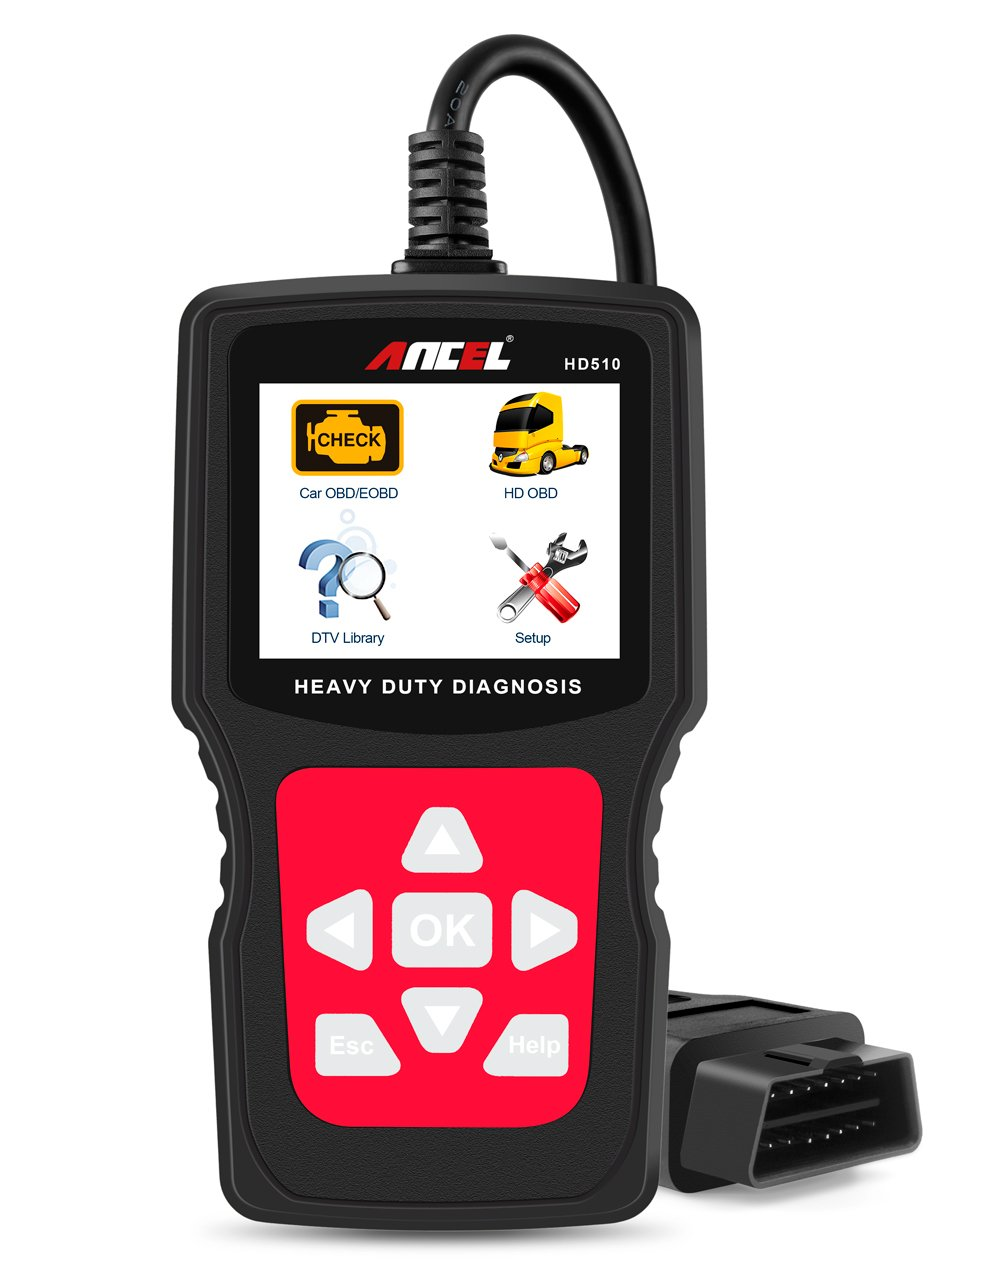 ANCEL HD510 Senior Check Engine Car OBD2 Diagnostic Code Reader Heavy Duty Truck HOBD Scanner with Mode 6 and Battery Status Check Function